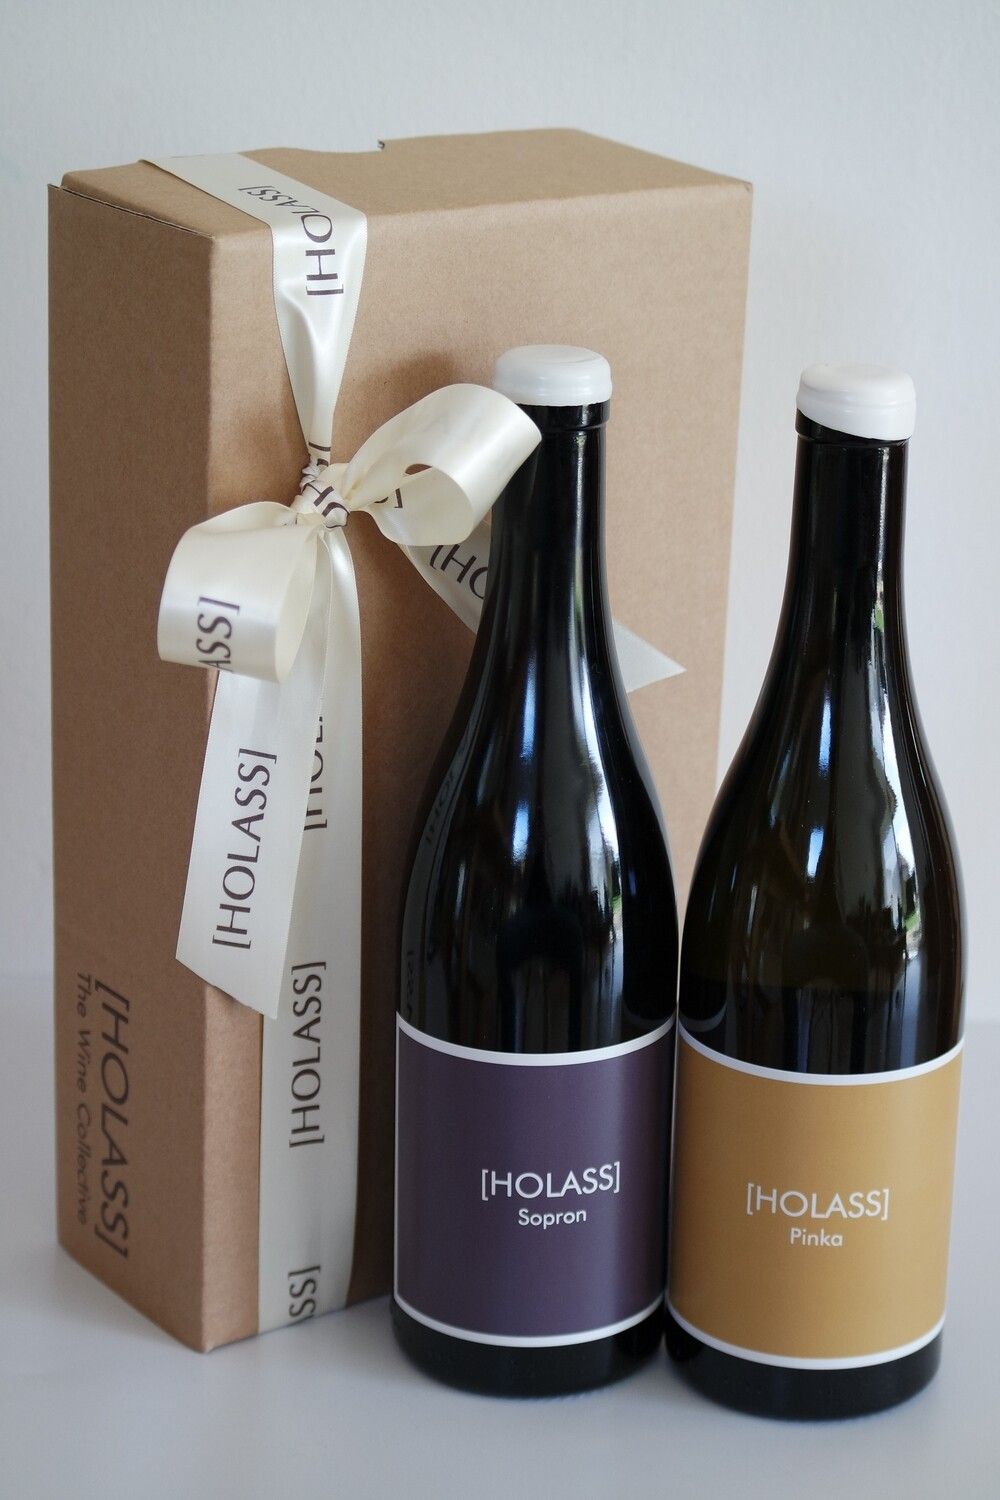 GIFT BOX with 2 [HOLASS] bottles